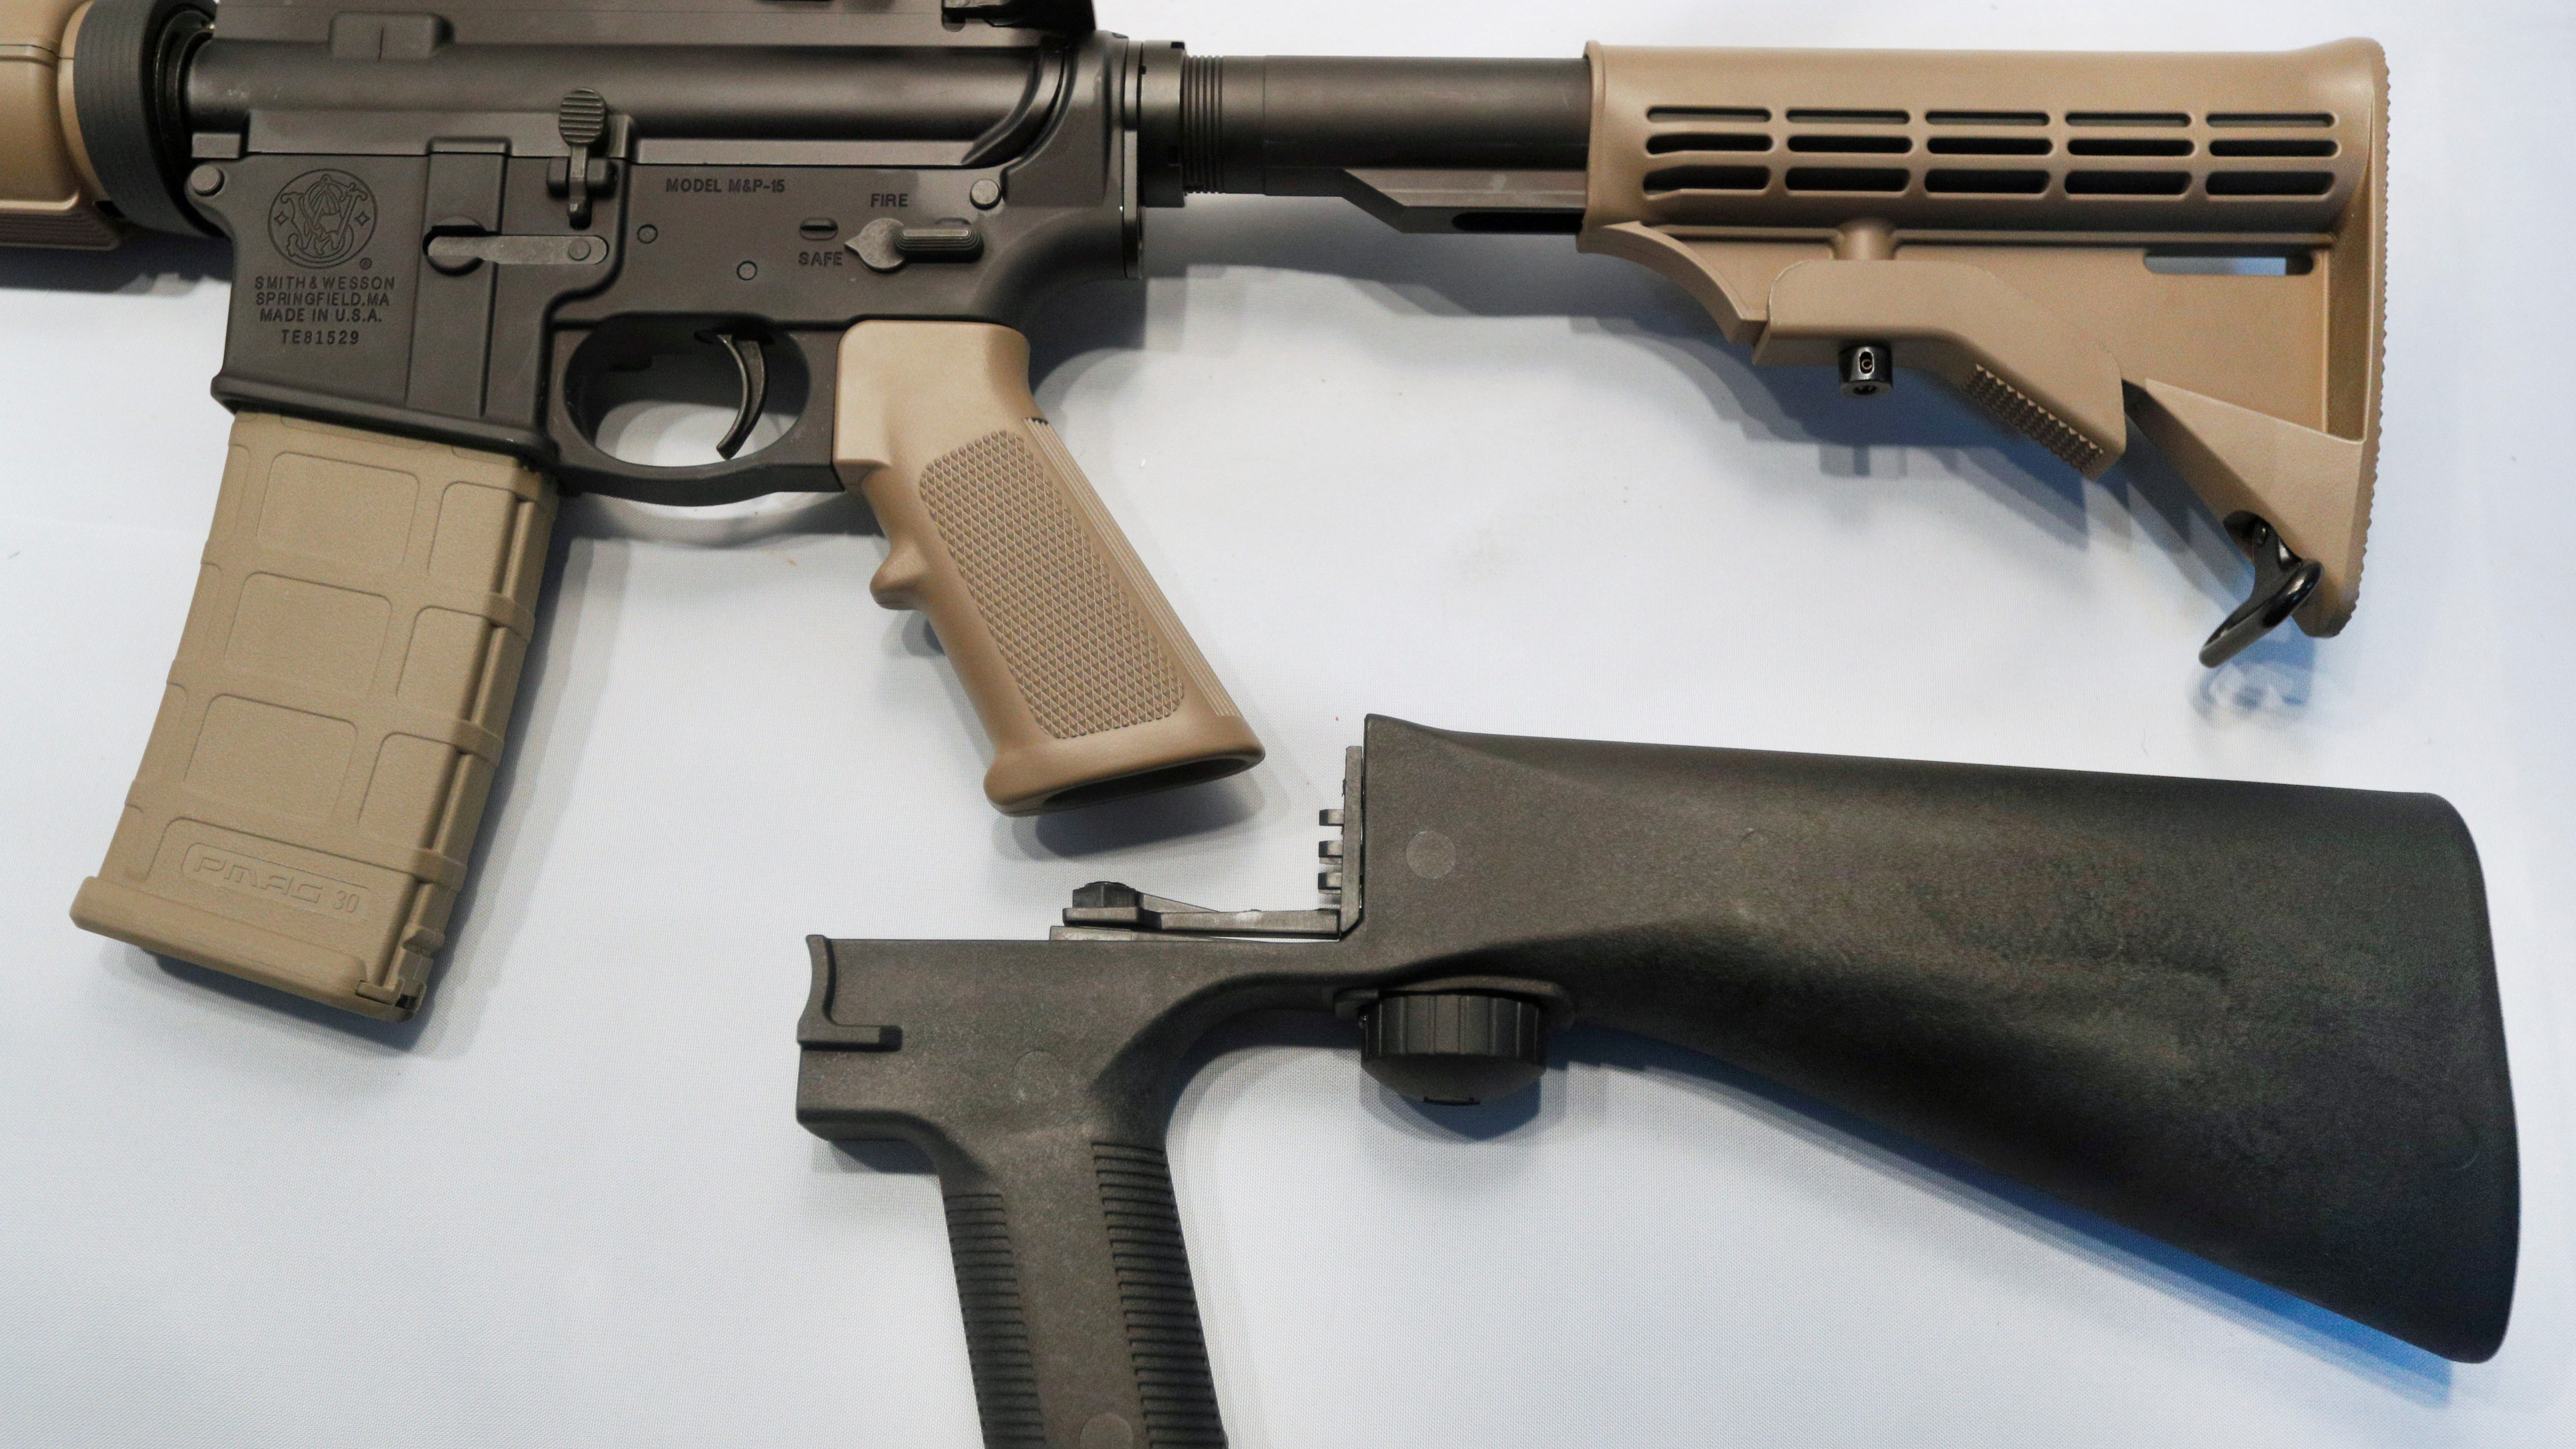 c52014621541b Trump's order to ban bump stocks is an empty gesture